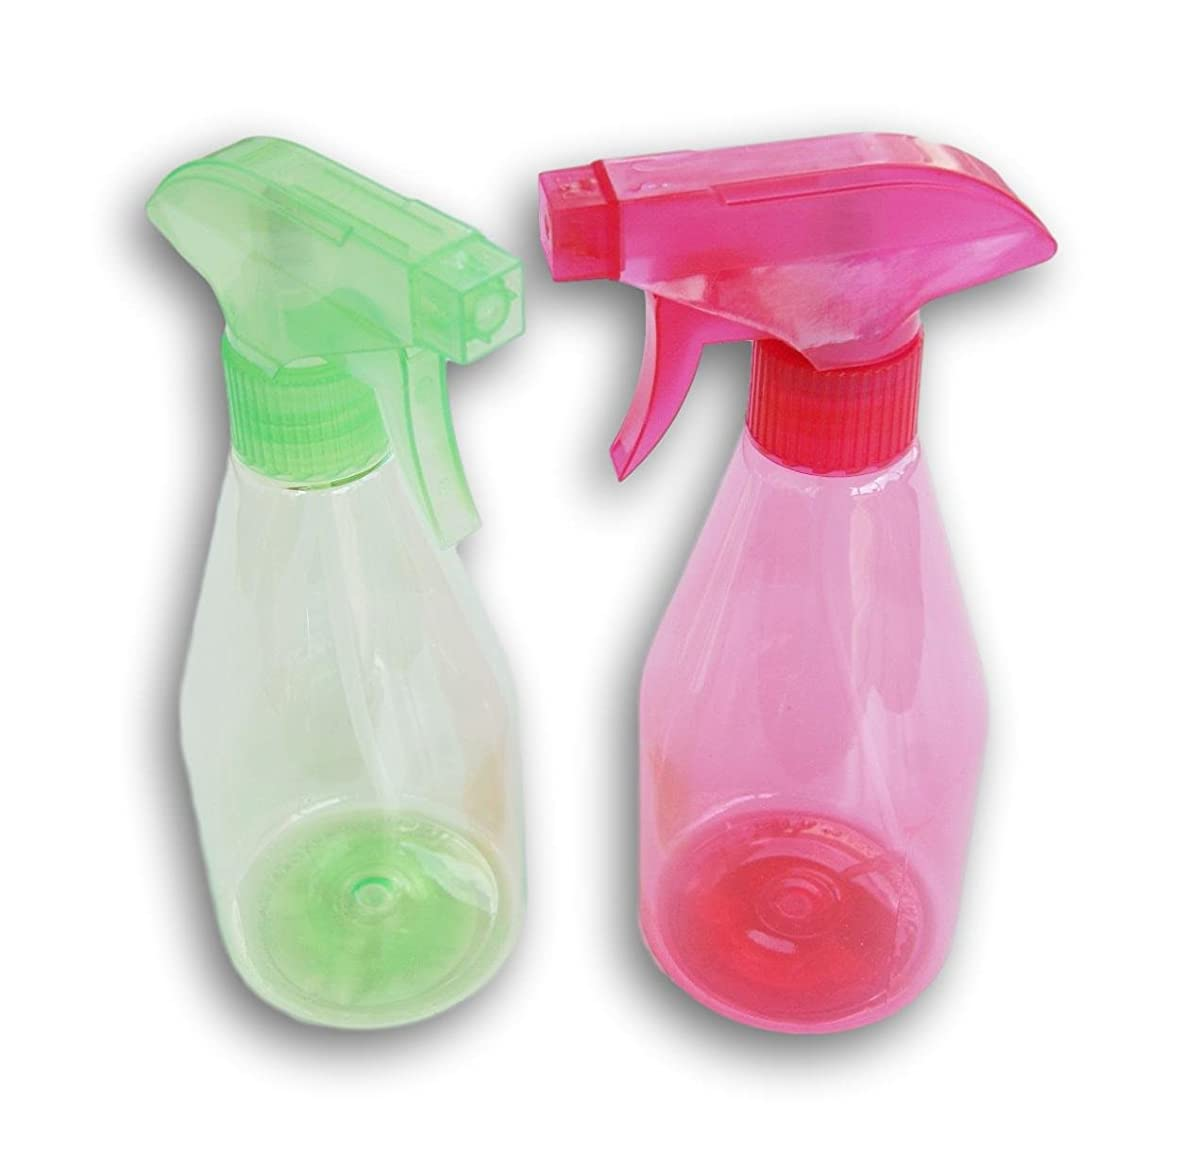 Plastic Spray Bottle - 14.5 Oz - 2 Count - Colors Vary